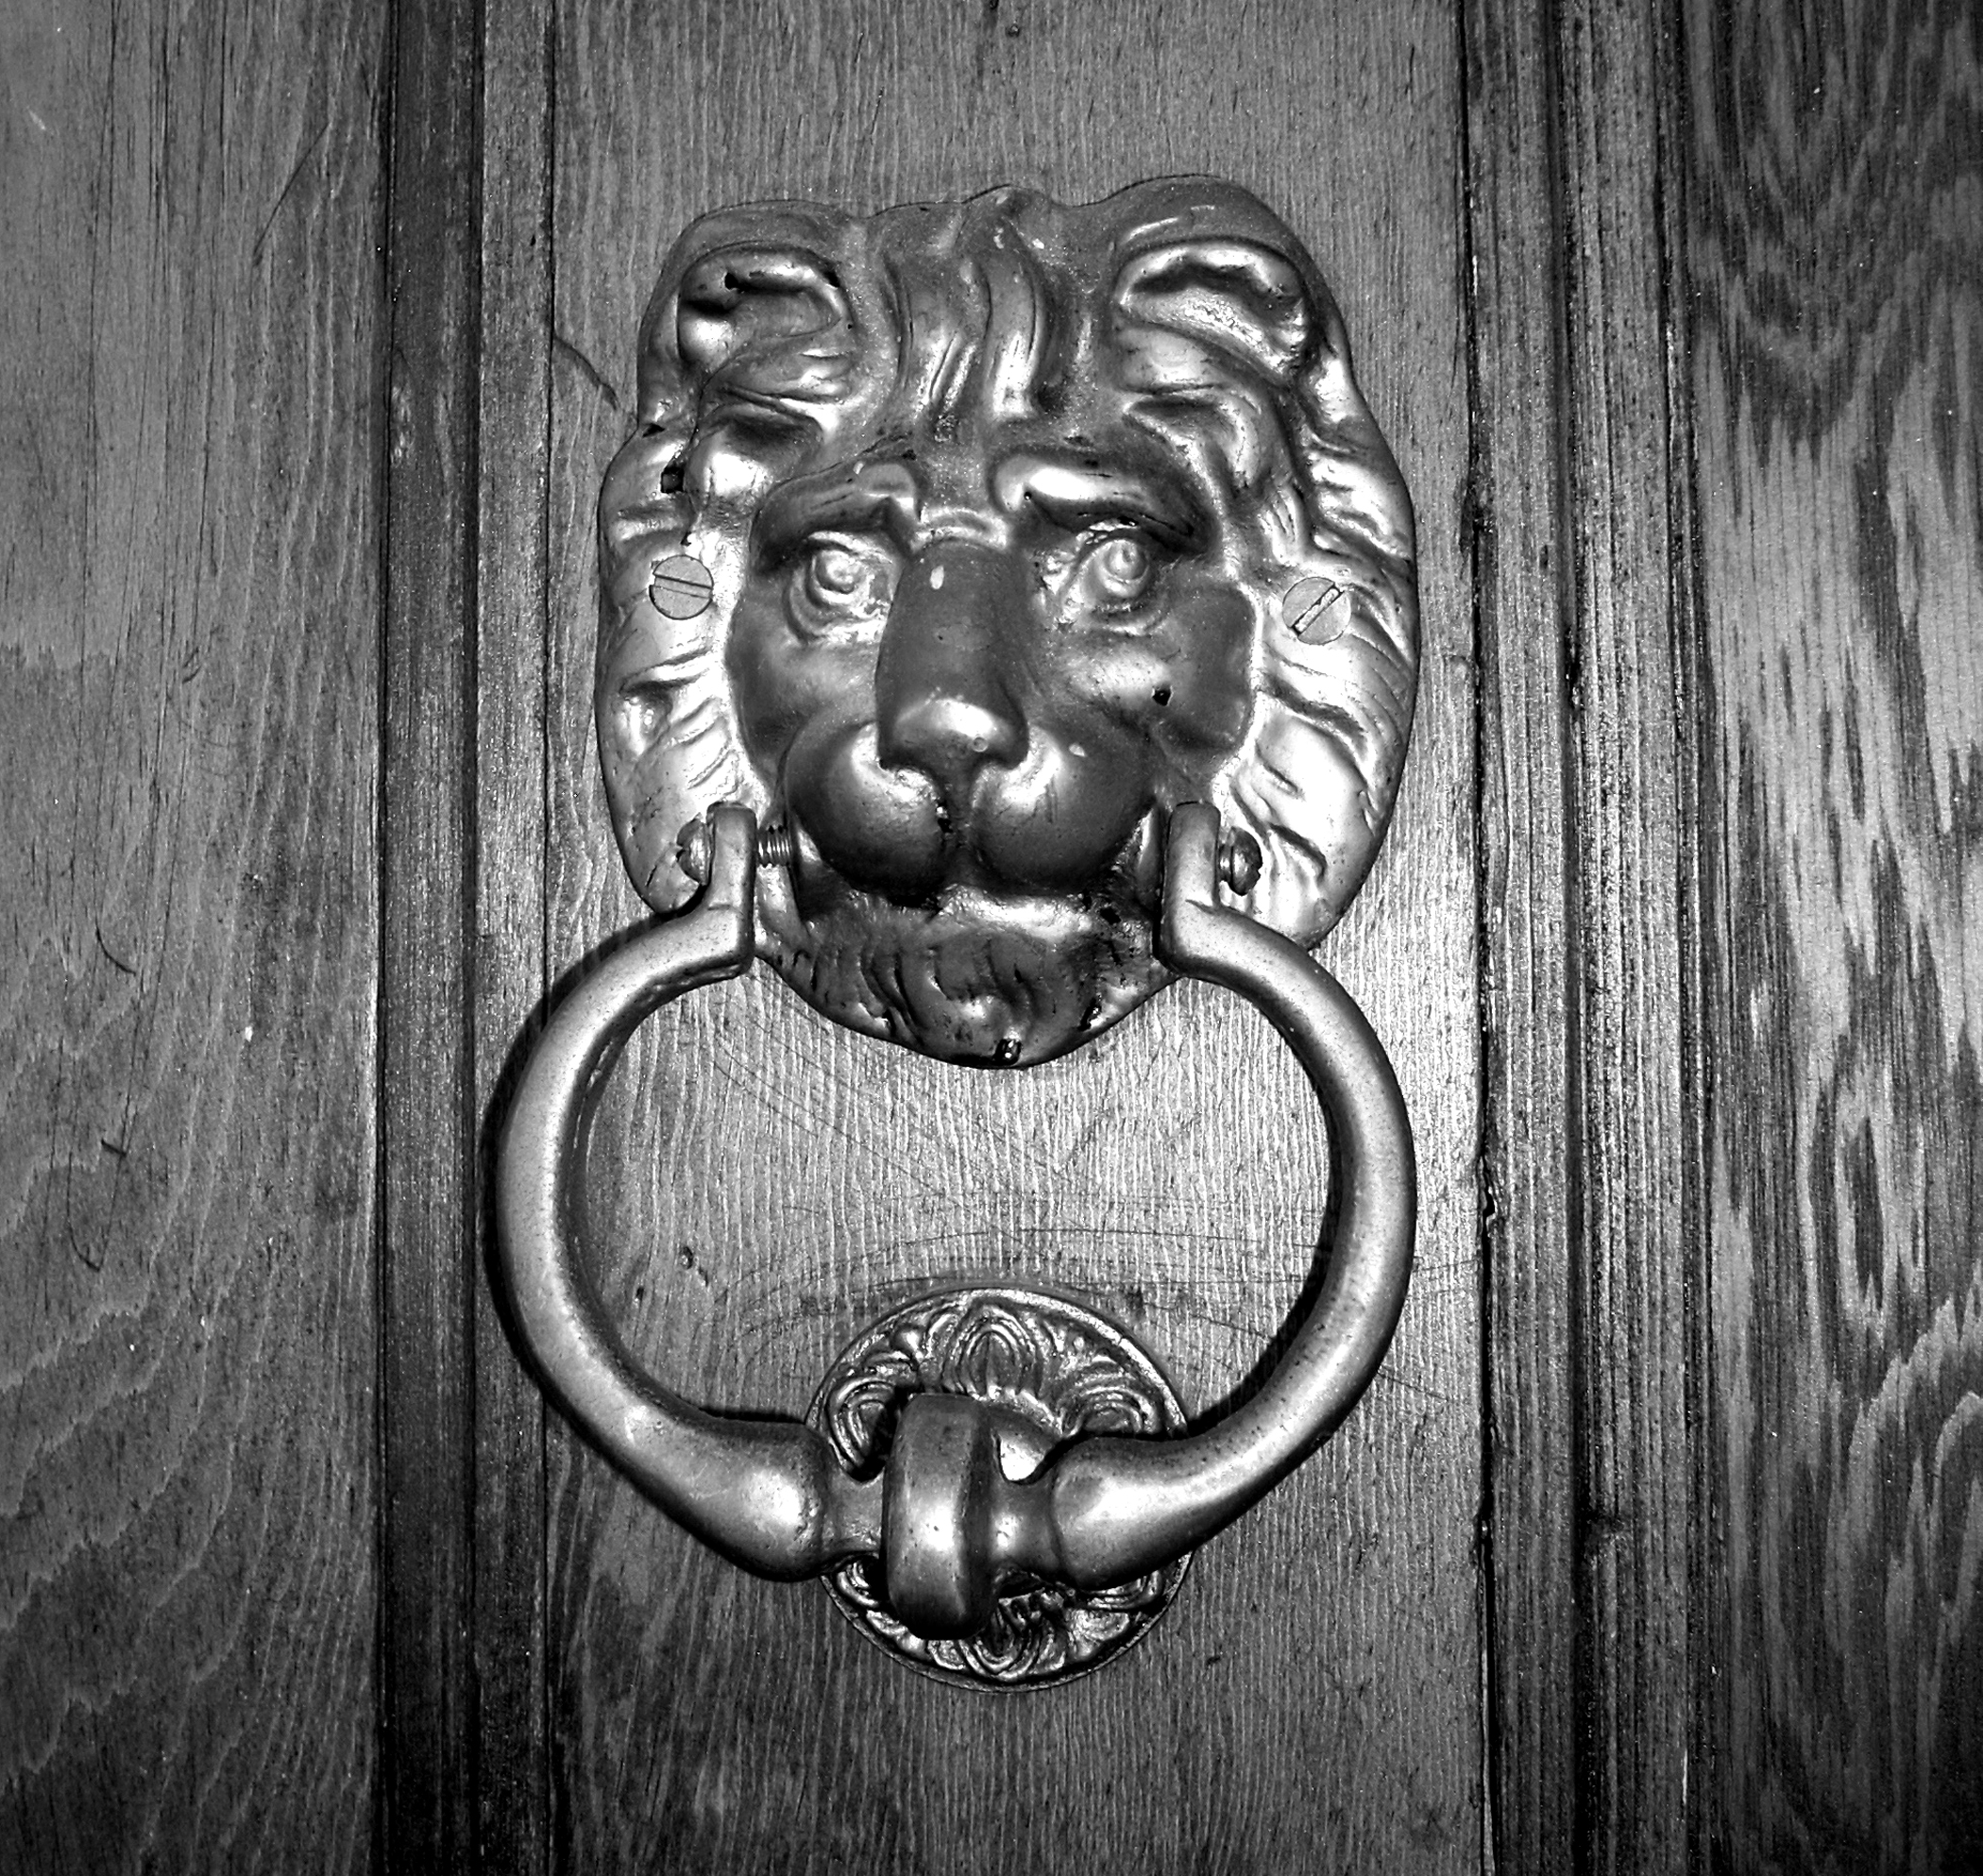 File:Brass Door Knocker